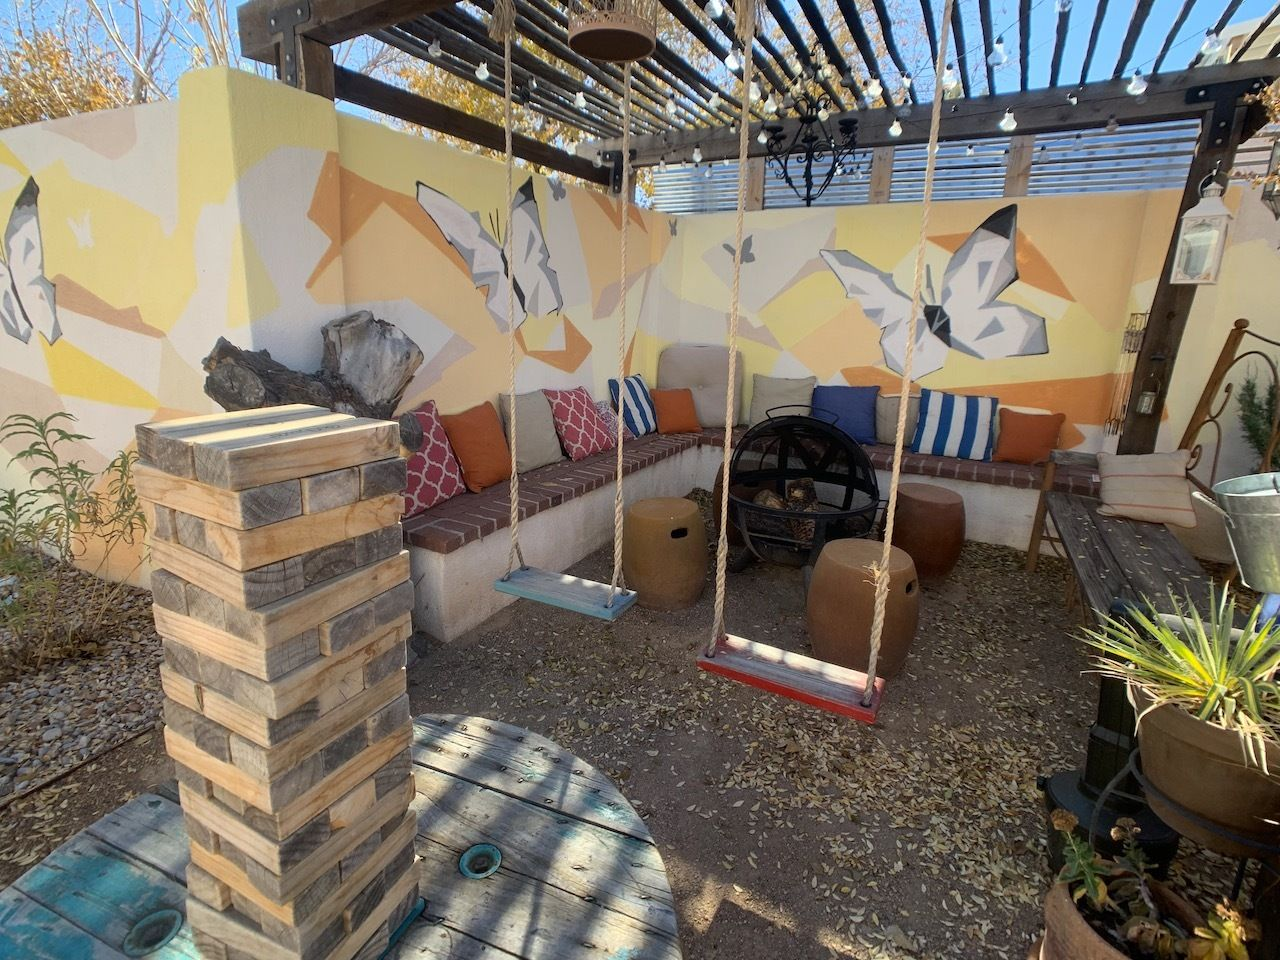 The-Painted-Lady-Bed-and-Brew-Albuquerque-patio, The Painted Lady Bed and Brew Albuquerque